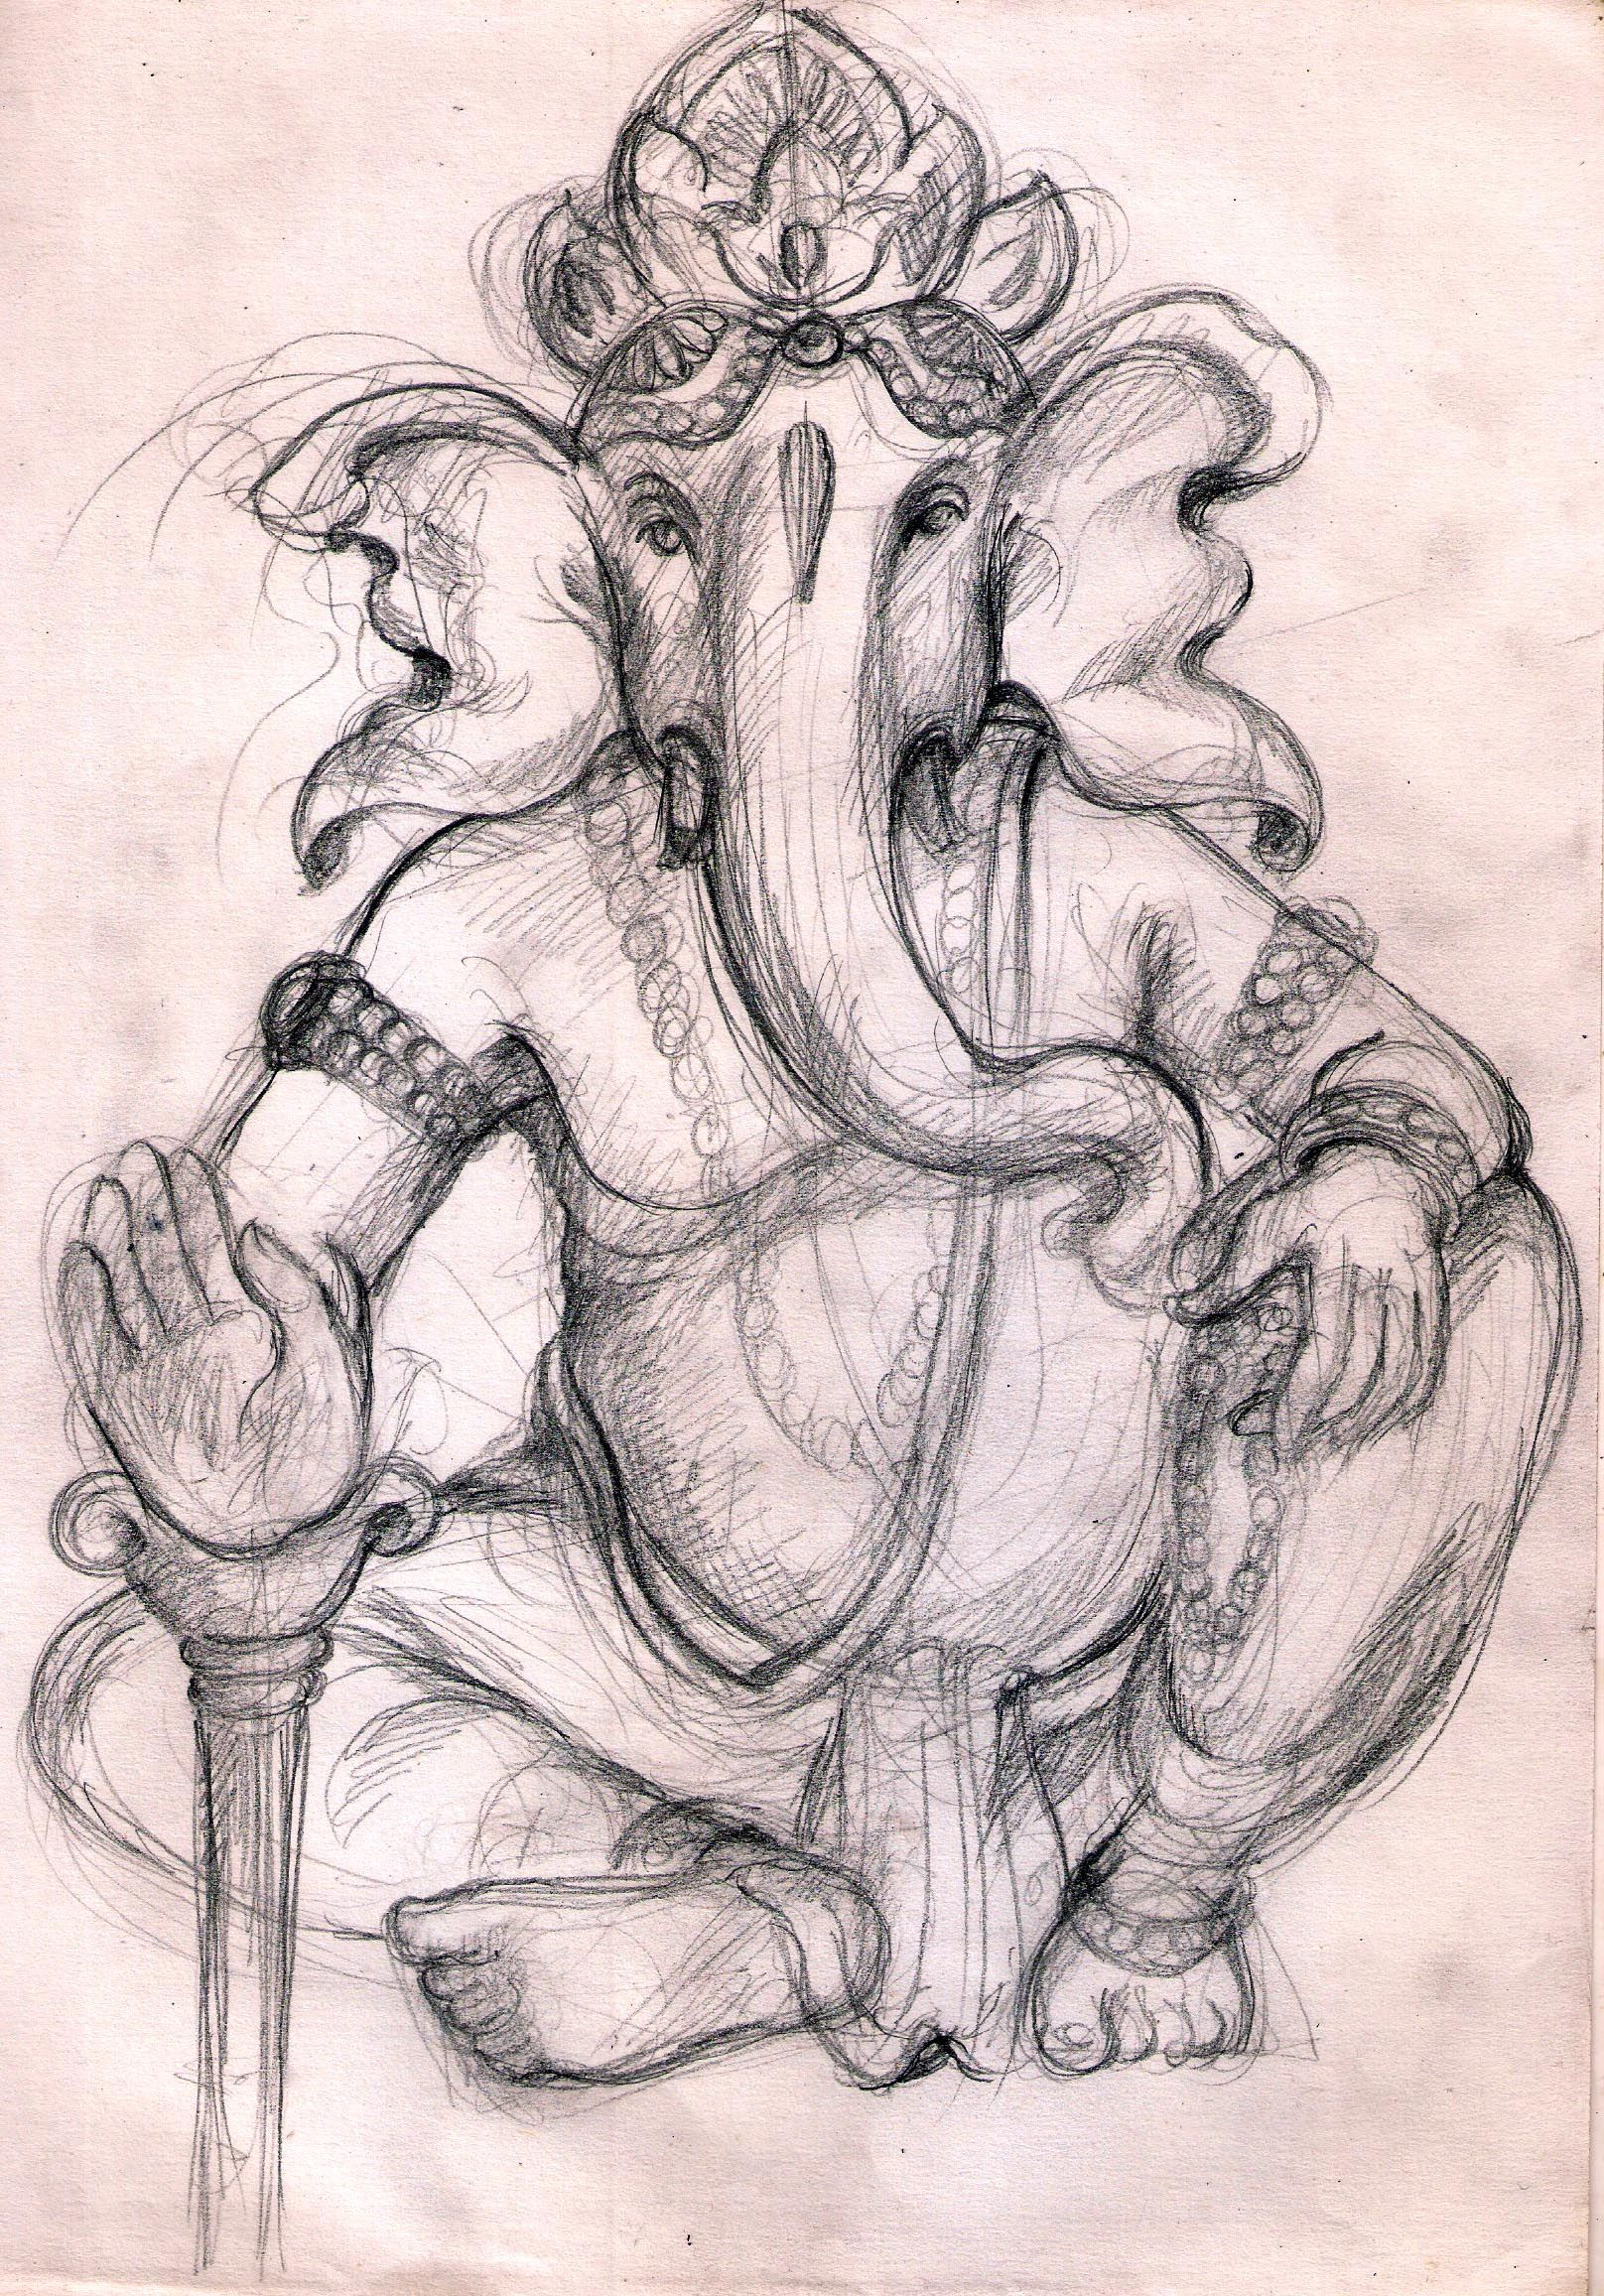 Pencil sketch ganesha